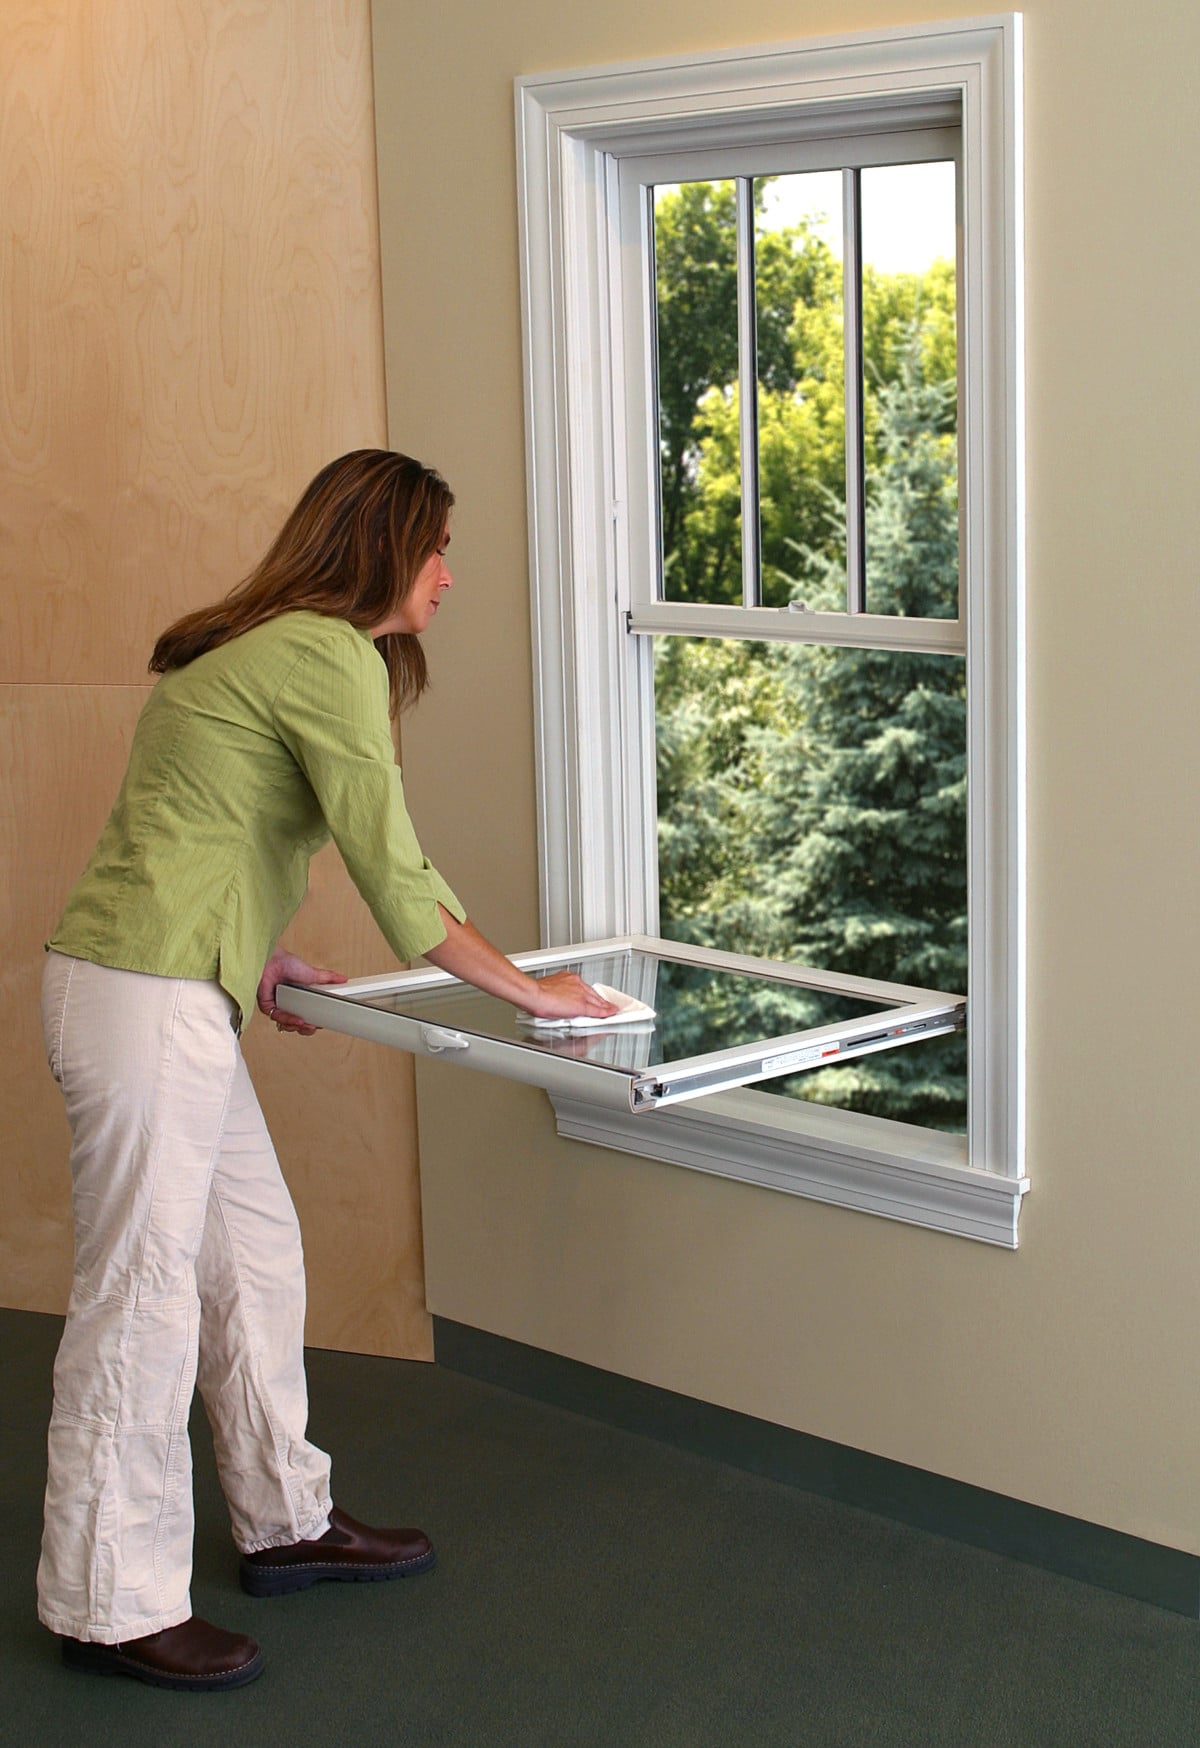 Cleaning Your Double-Hung Windows